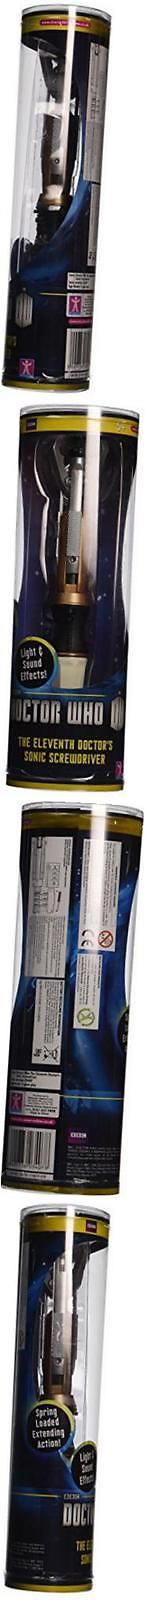 Doctor Who 166791: 11Th Sonic Screwdriver -> BUY IT NOW ONLY: $34.58 on eBay!